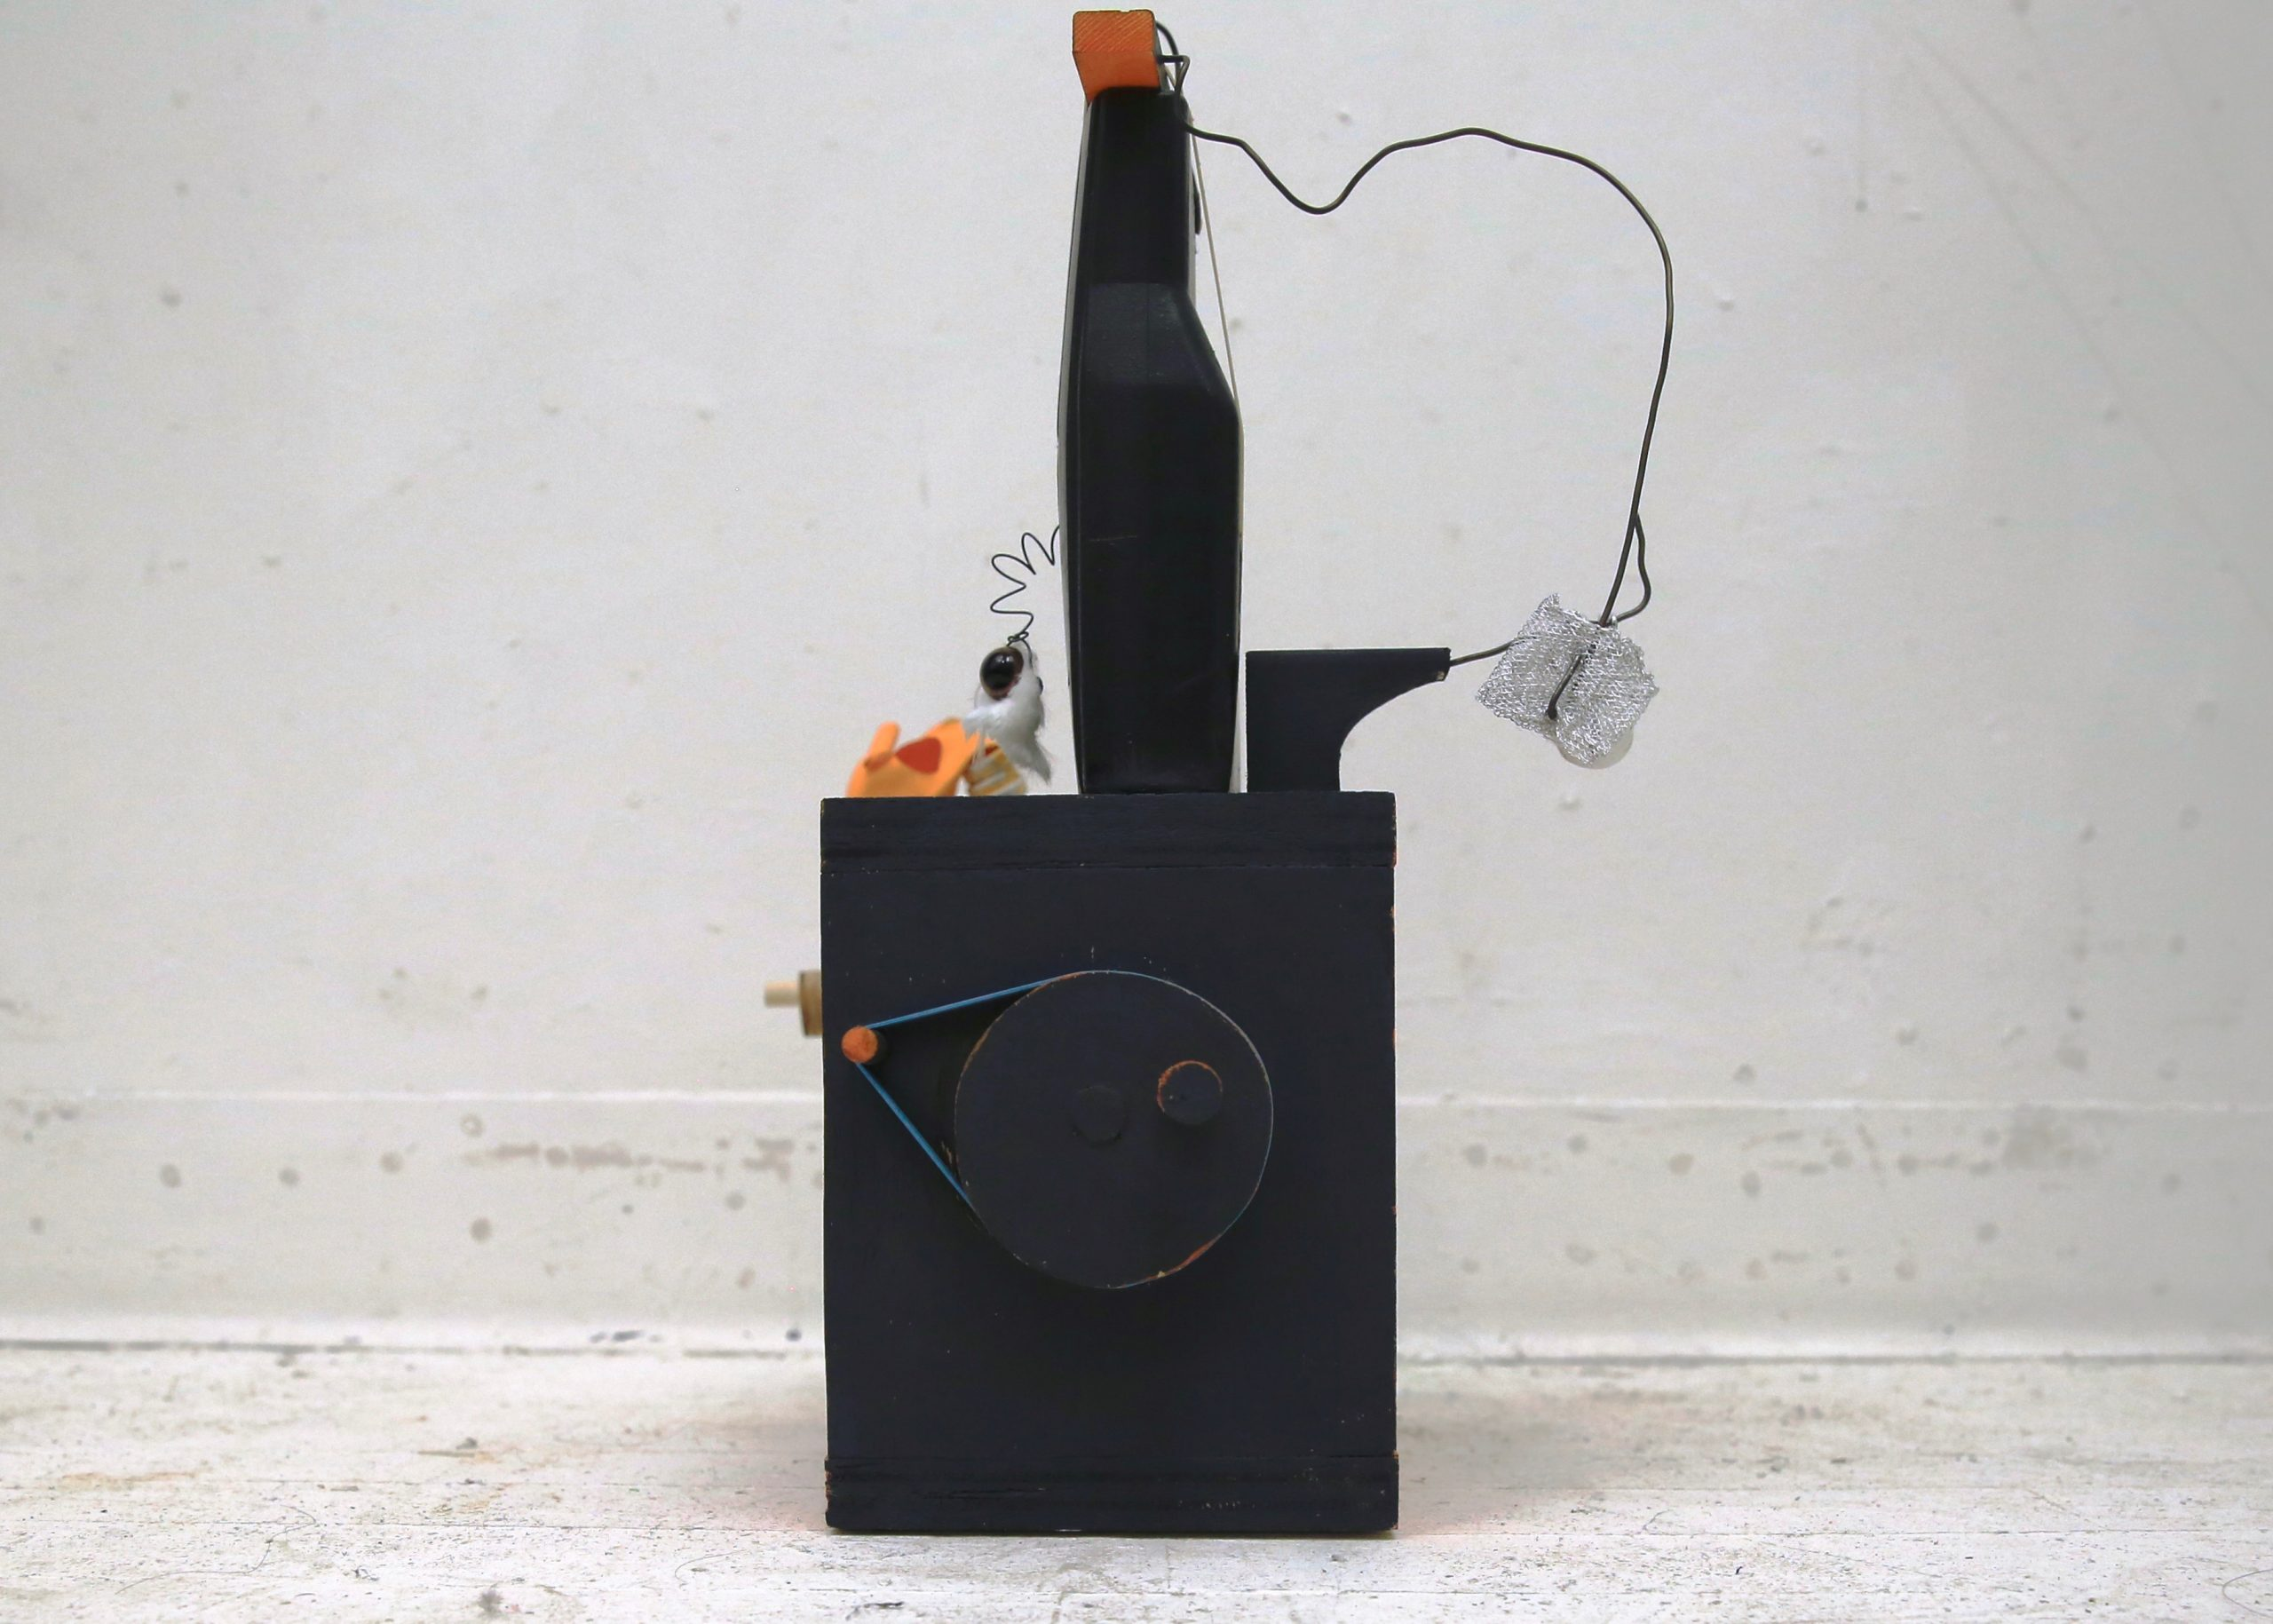 Spooky Sad Box (side), 2017, Acrylic gears, found wood, rubber bands, balloons, wire, paper pulp, swivel chair part, plastic thumb, plastic eye, plastic skeleton toy fragment, acrylic paint, wood glue, and brads, approx. 12